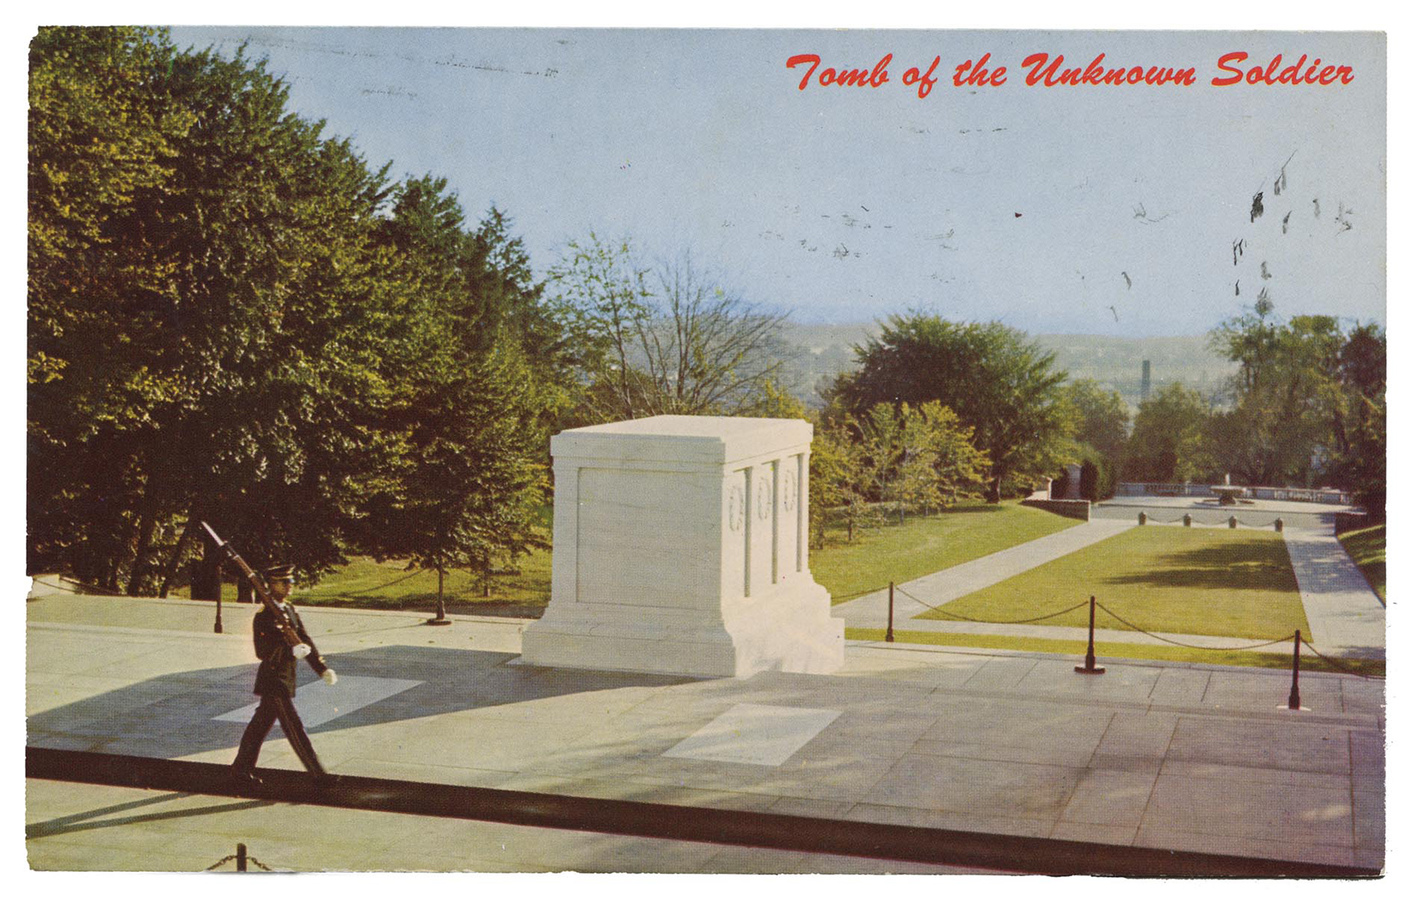 Memorial Tomb of the Unknowns. Mike Roberts, Natural Color, Berkeley, CA. Published for Washington Novelty, Inc., Washington, D.C. Digital scan of post card (front)